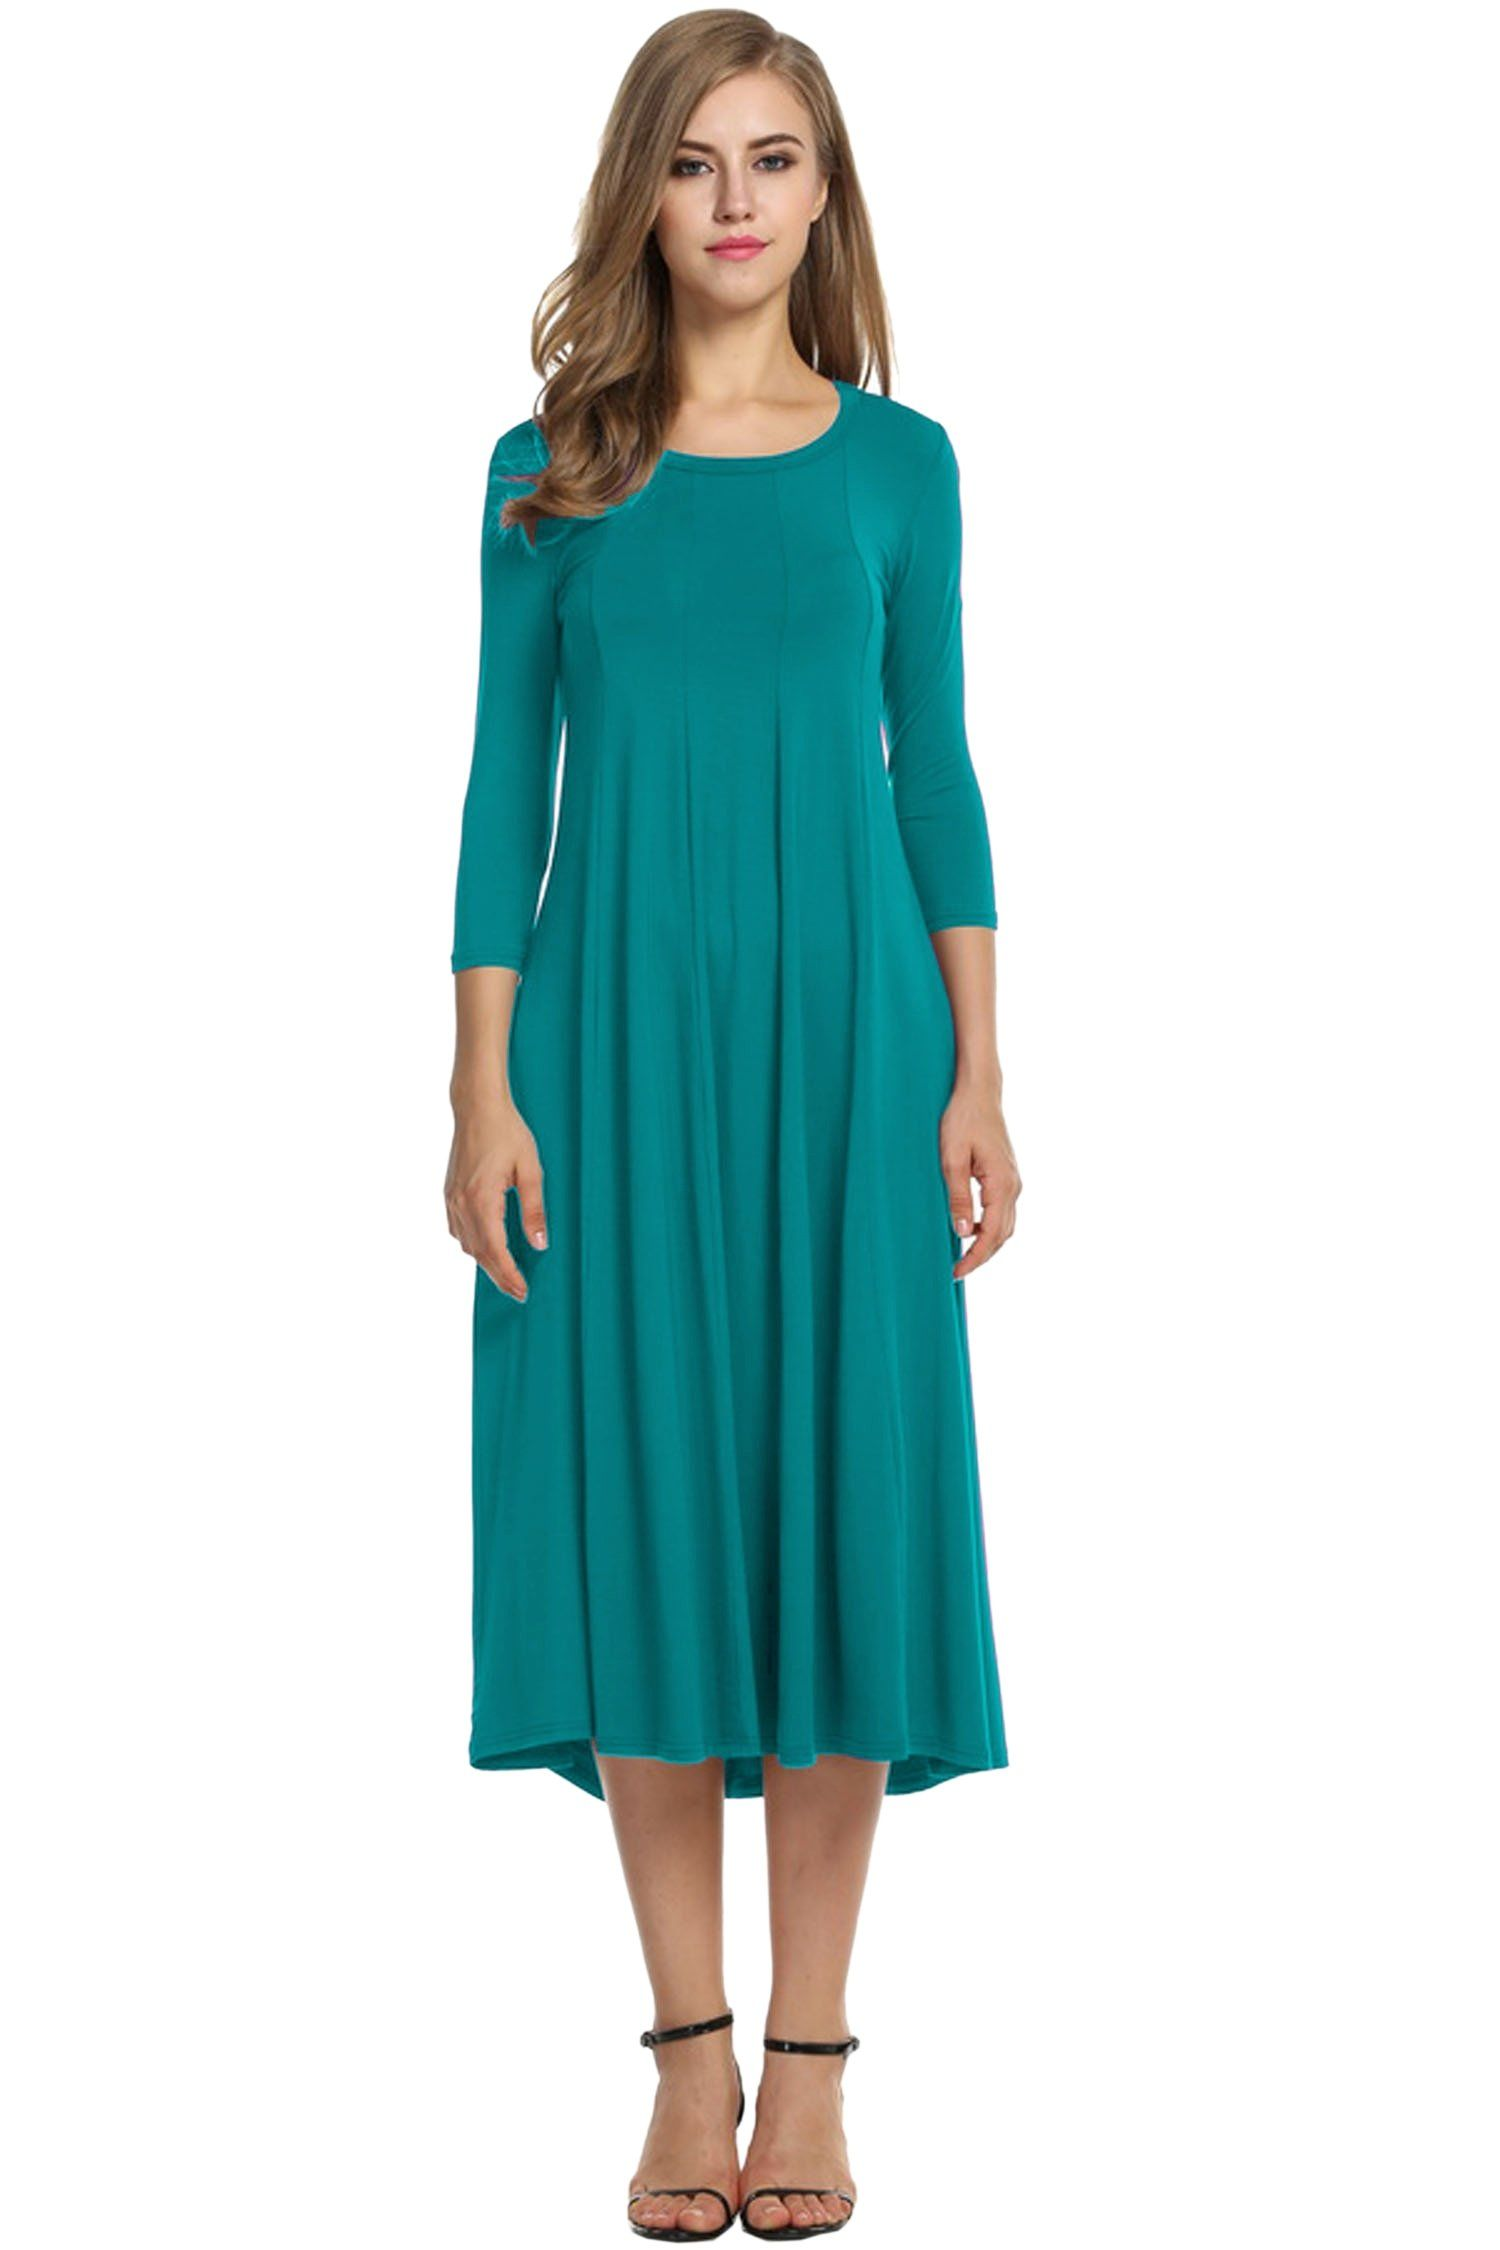 622d29cc7e569 Maternity Dresses - Hotouch Women 3/4 Sleeve Round Neck Summer Casual Flared  Midi Dress Jade Green XL * See the photo link more information.